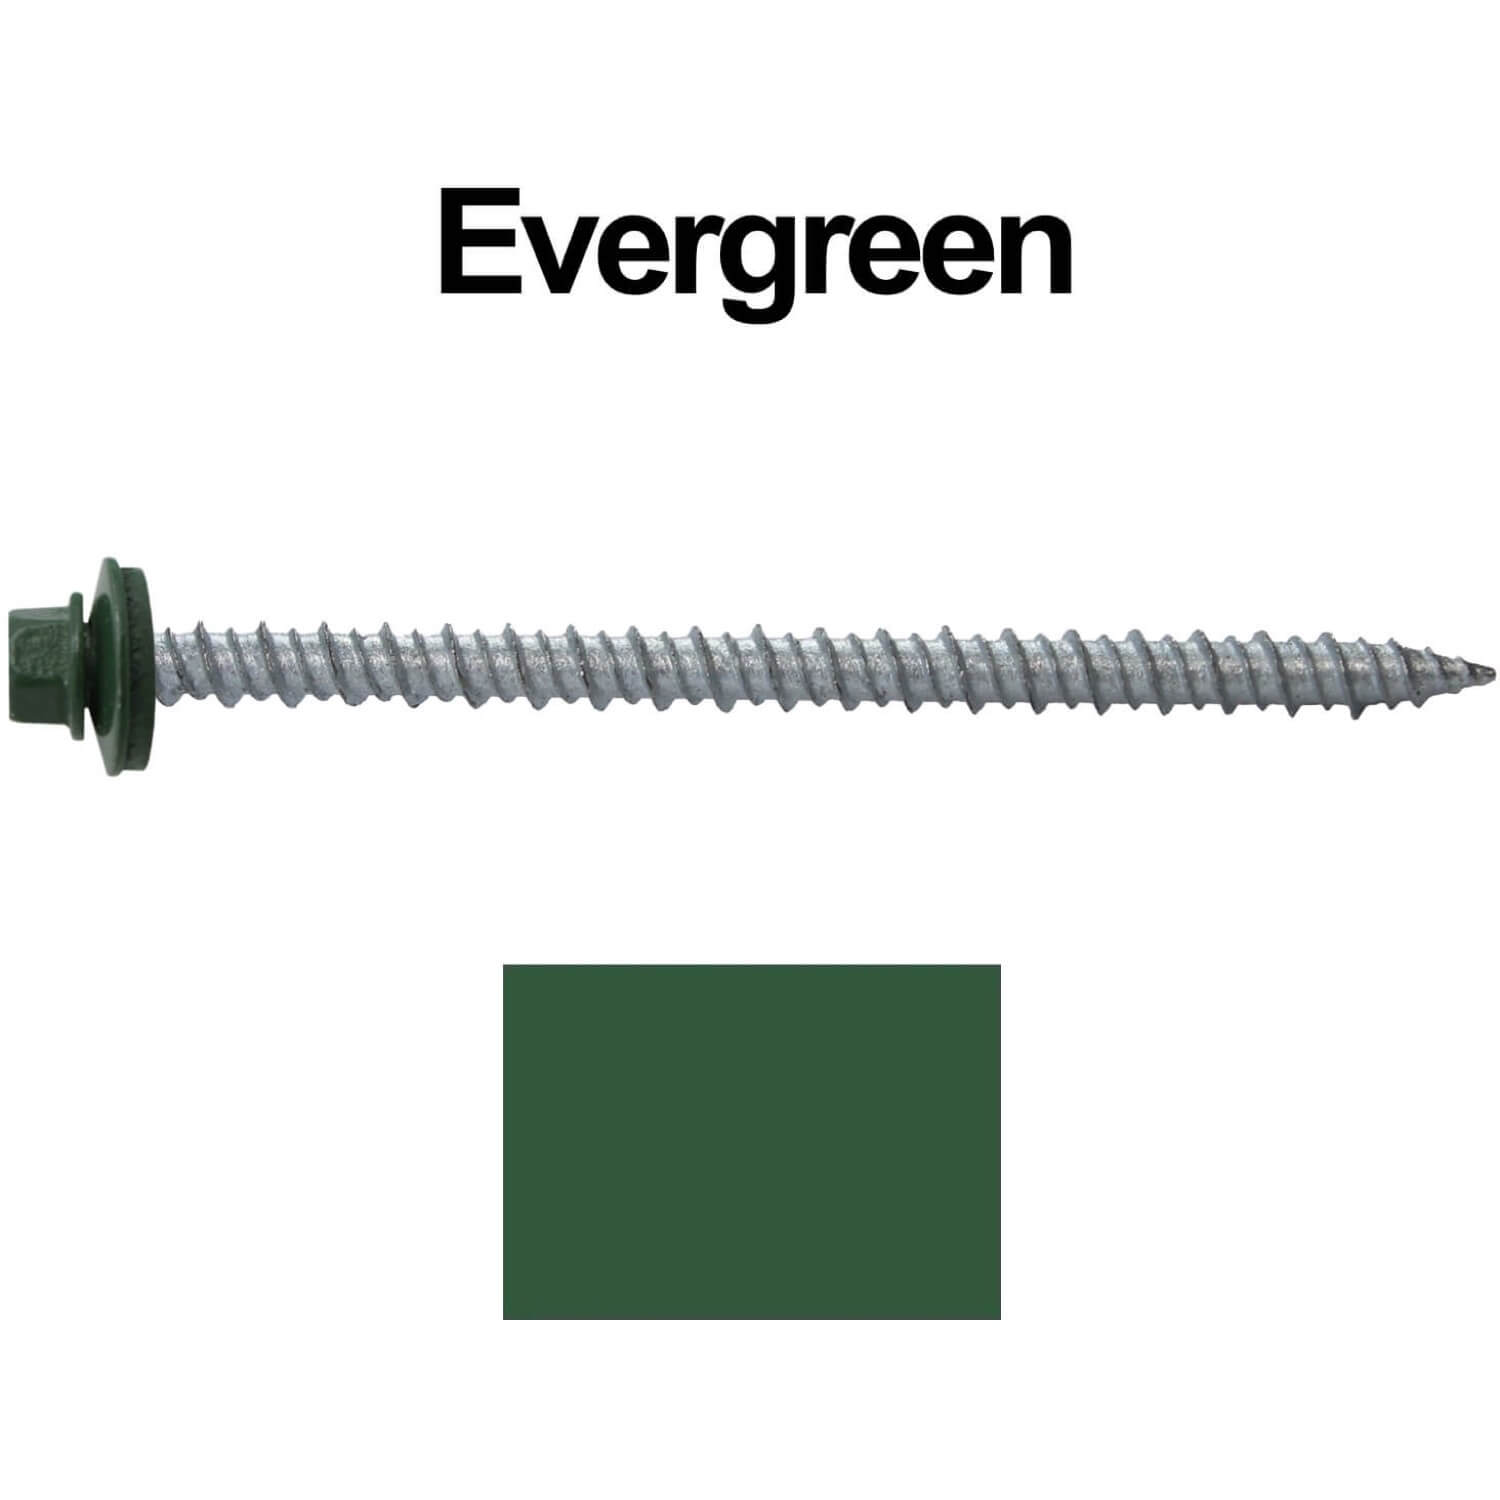 #10 Metal ROOFING SCREWS: (250) Screws x 3